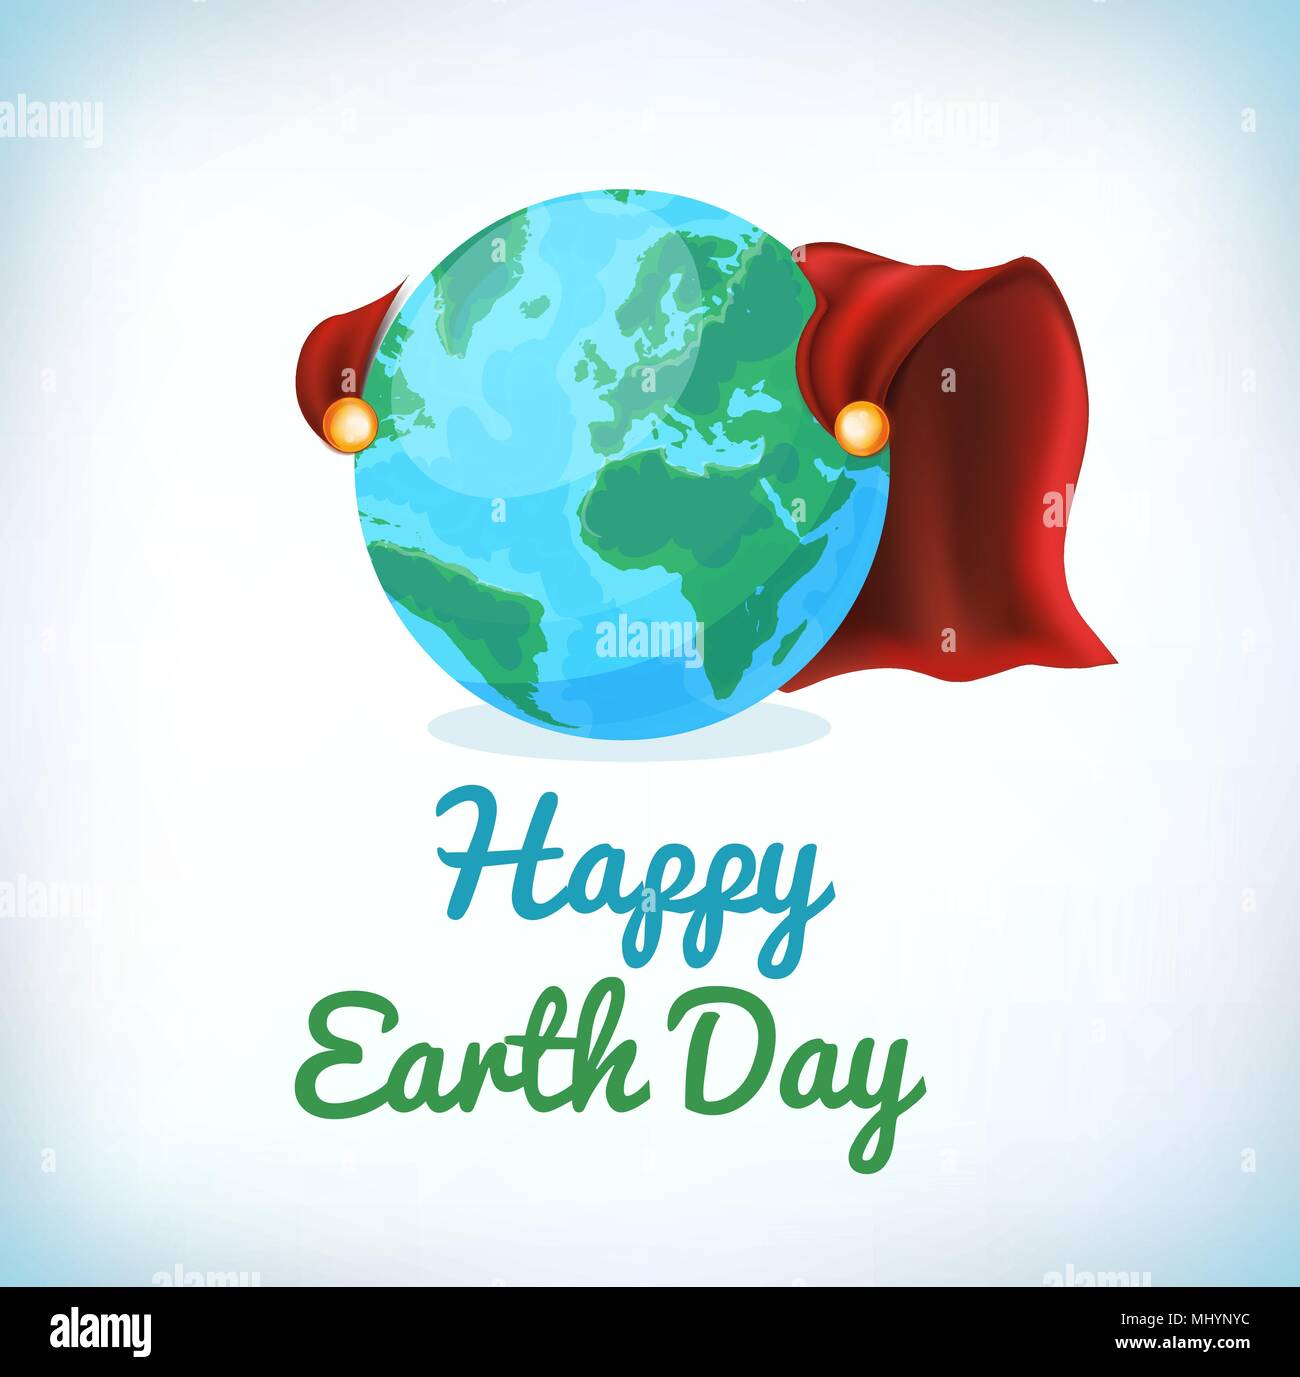 Happy Earth Day card, background. Vector illustration for banner and poster. Element for design cards and invtions. Symbol for gift cards and flyers.  - Stock Image